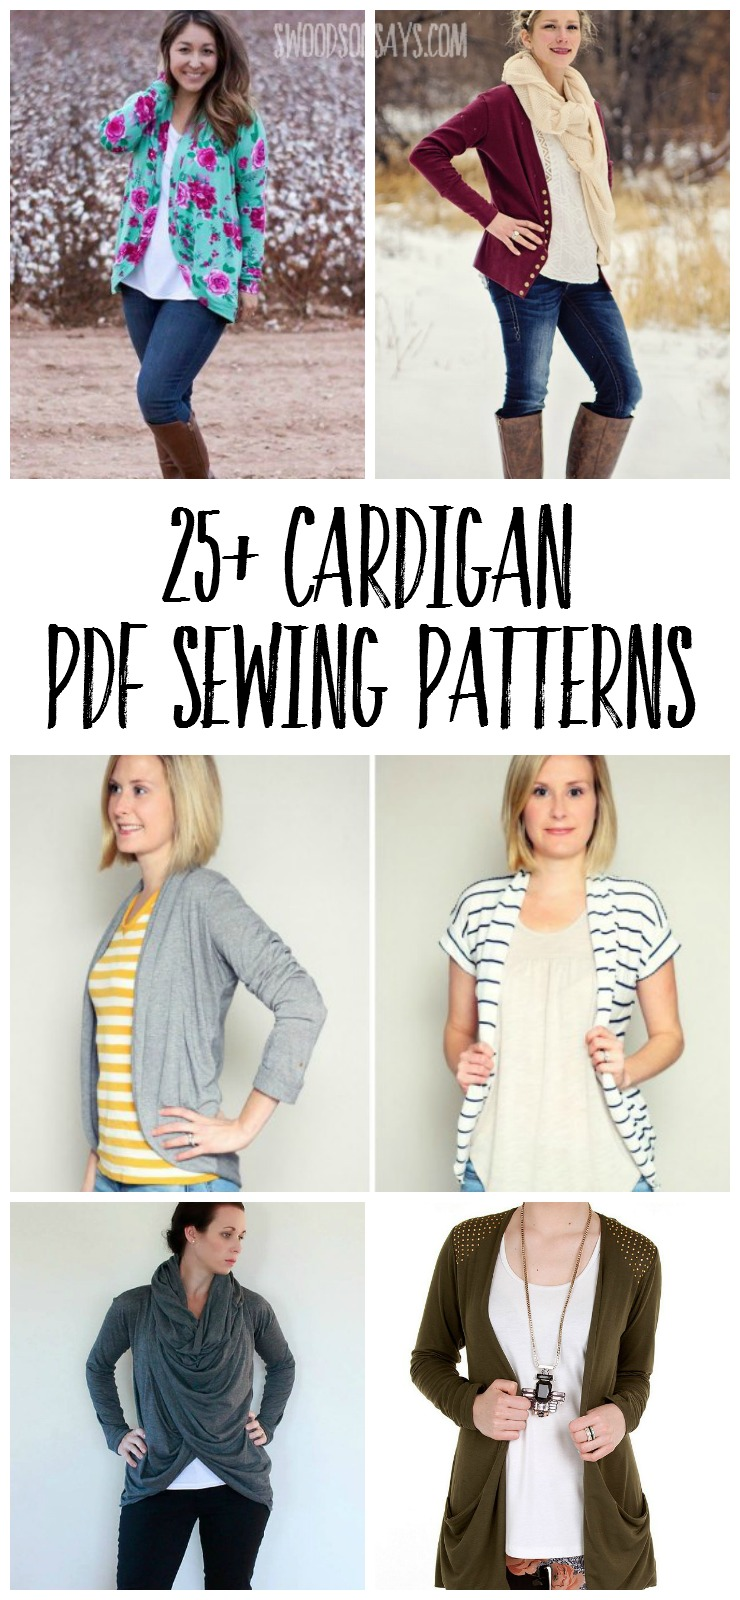 Check out this huge list of PDF sewing patterns for cardigans! Perfect fall layers and sewing patterns for women.